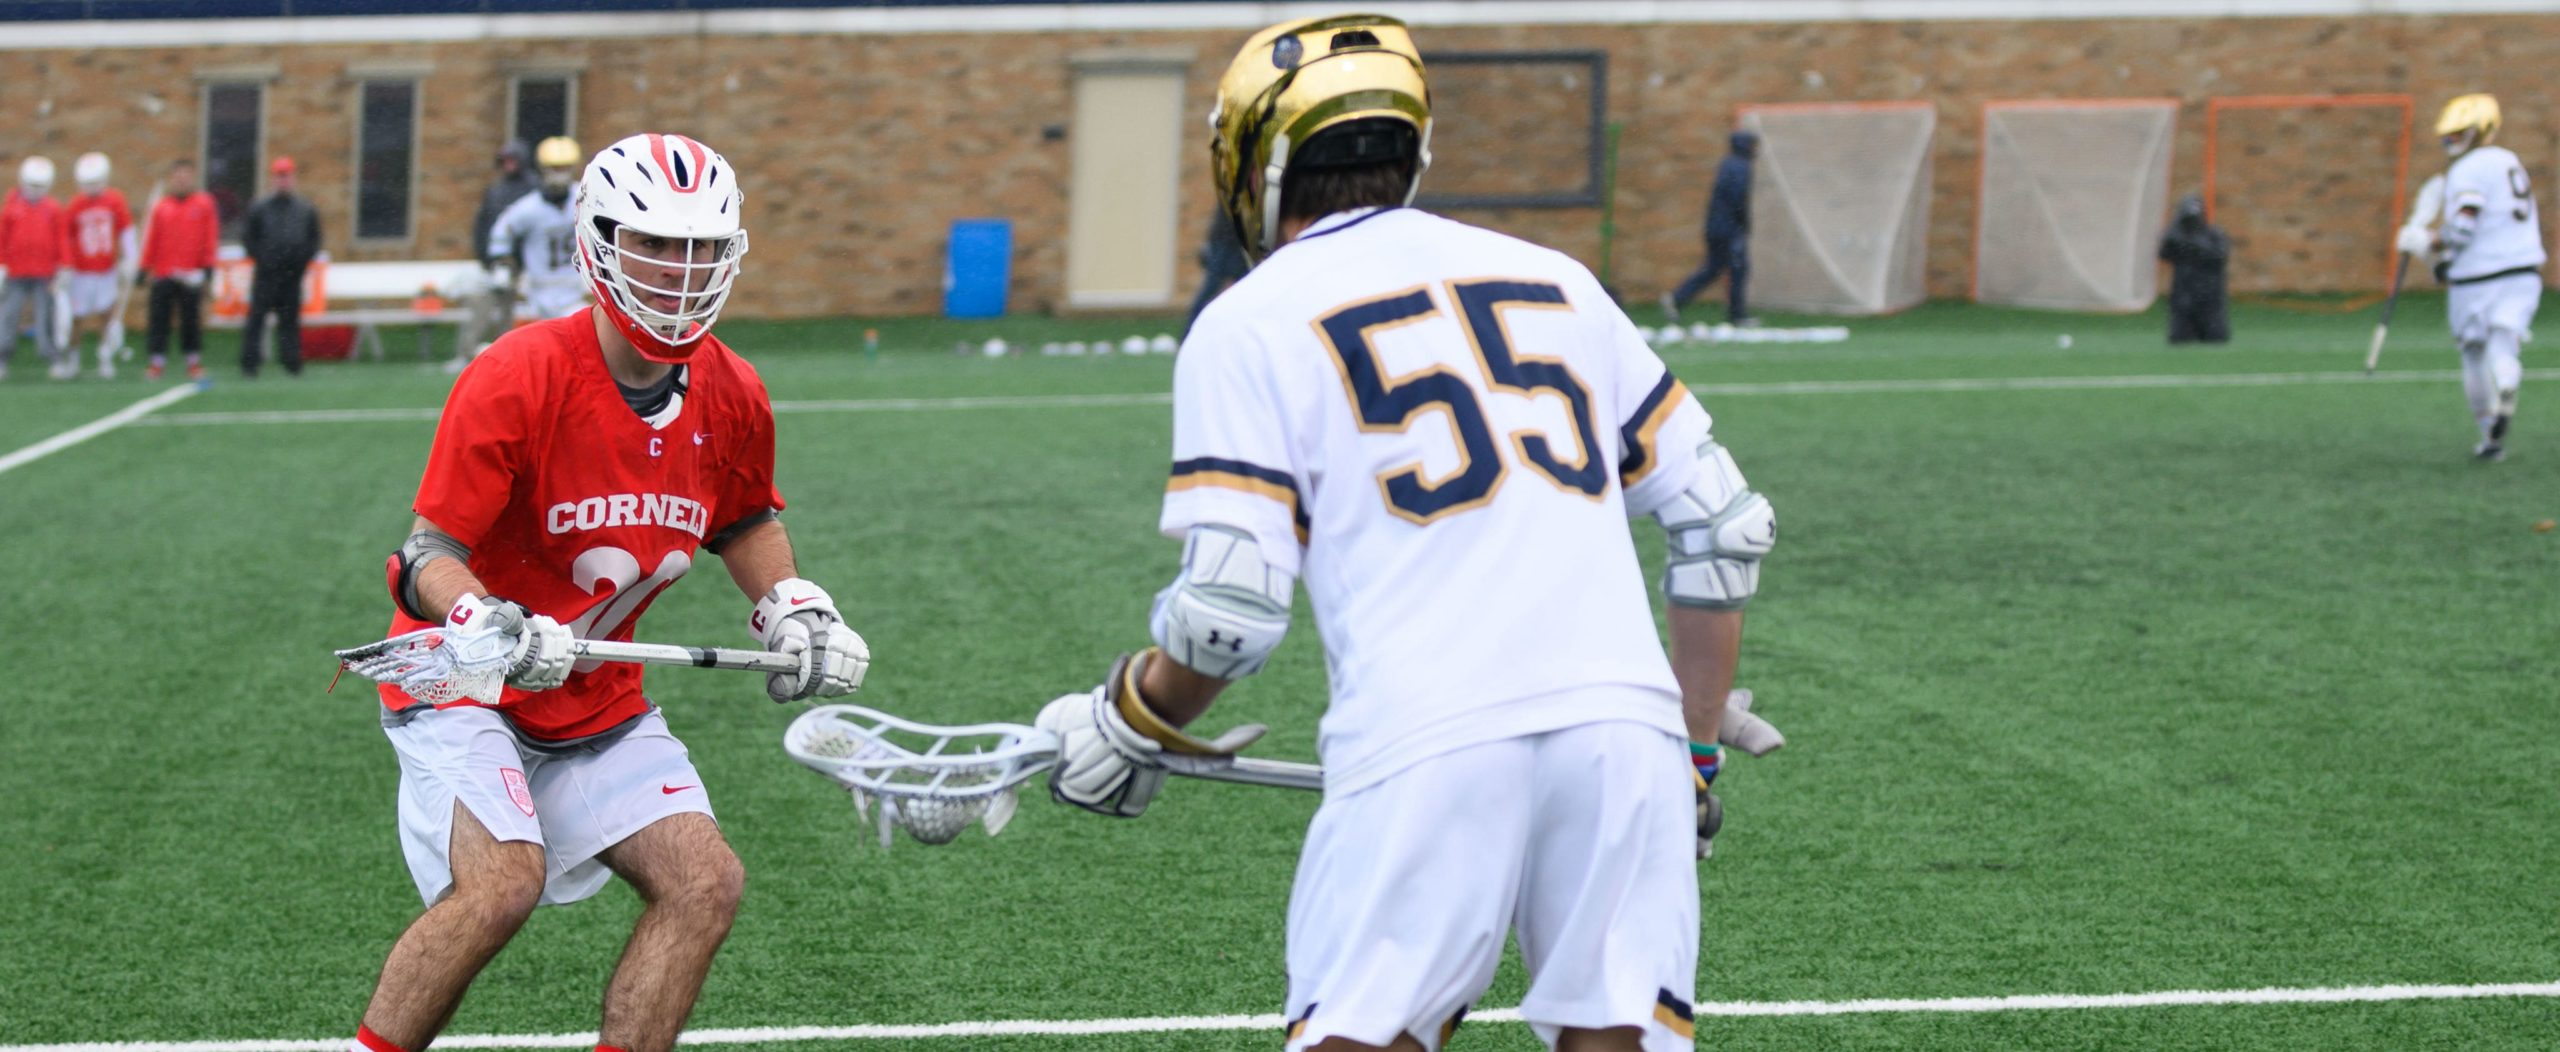 Notre Dame Lacrosse's Wheaton Jackoboice from Kansas City, Missouri